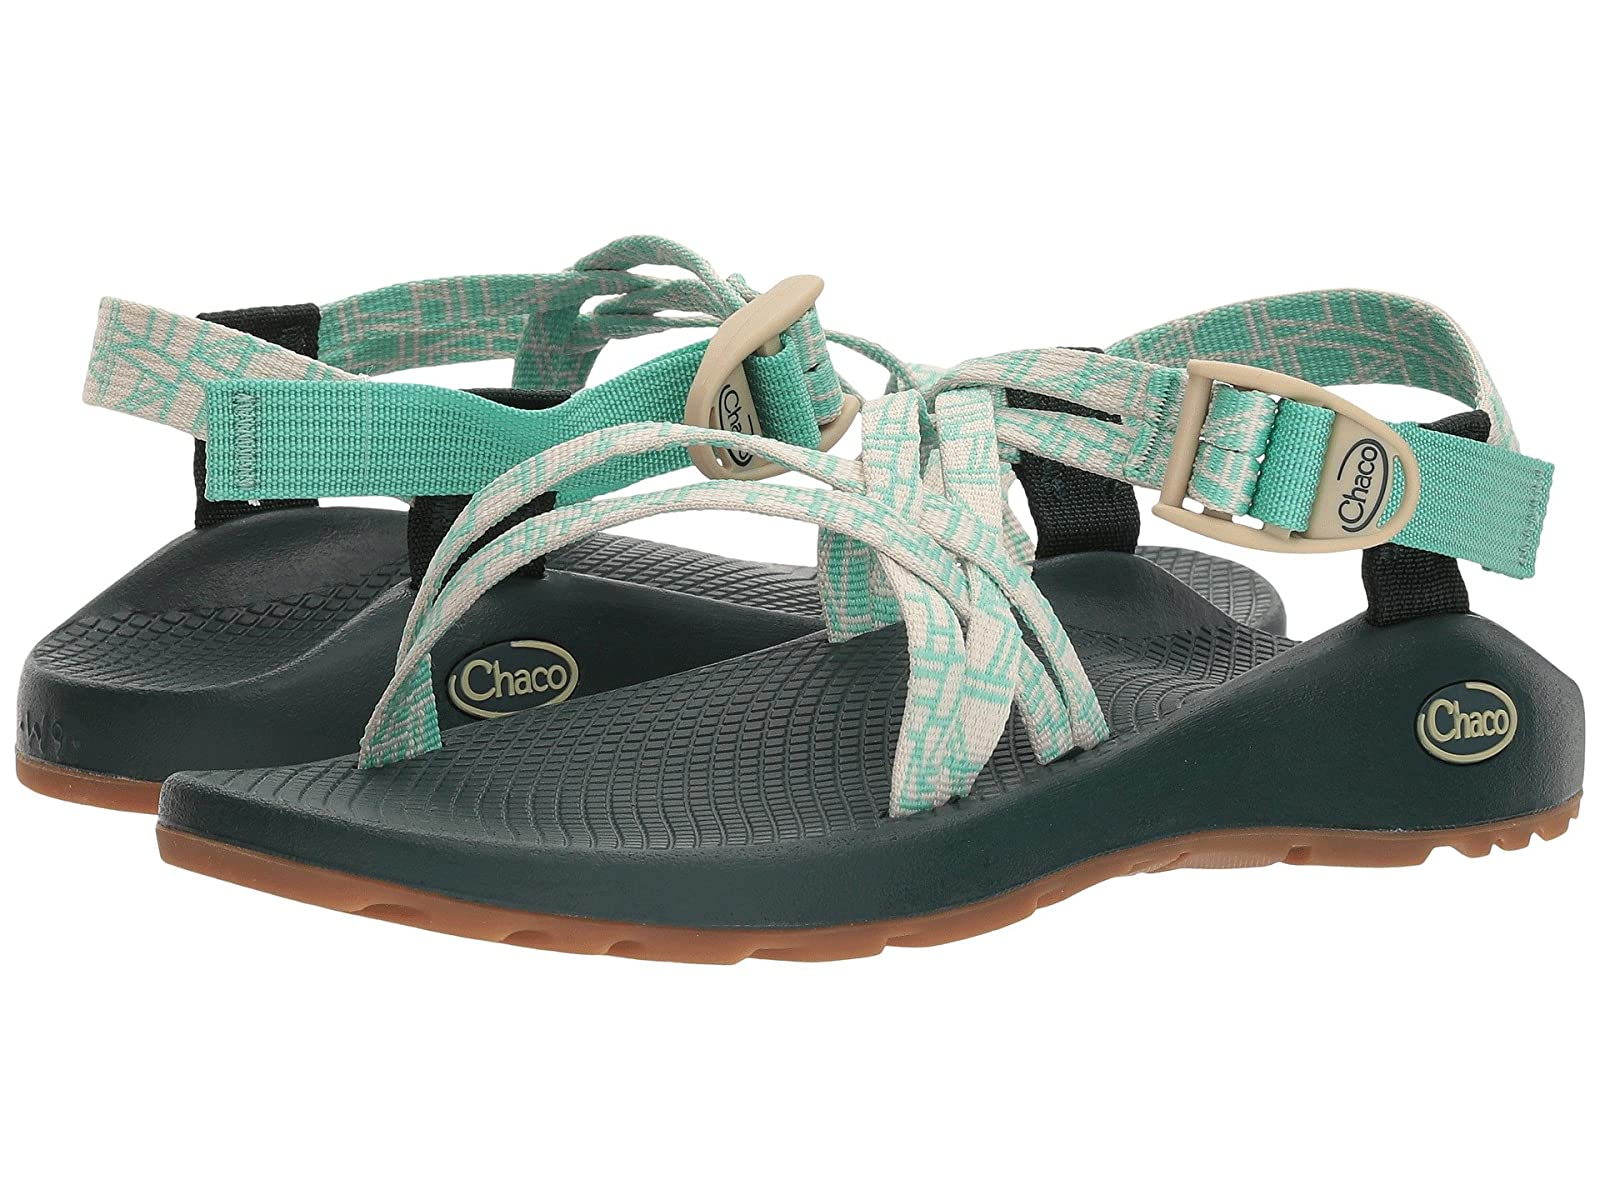 Chaco ZX/1® ClassicComfortable and distinctive shoes